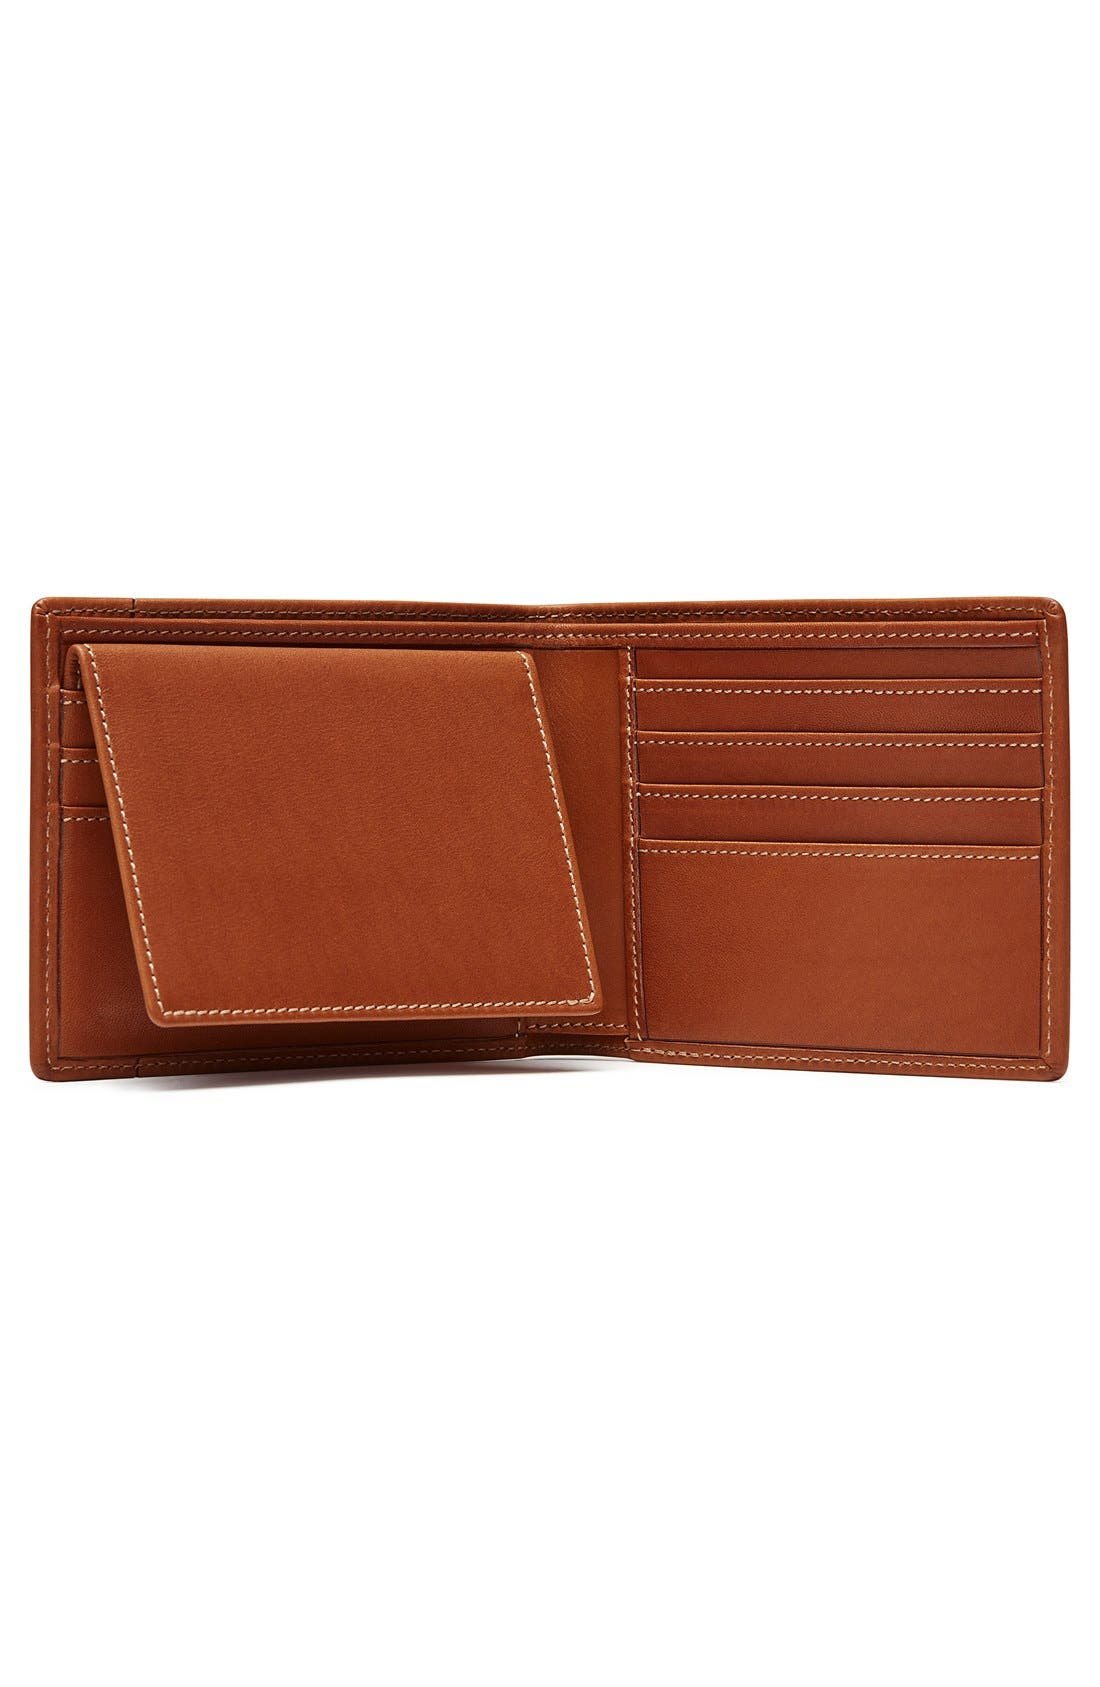 Alternate Image 3  - Ghurka Leather Wallet with ID Case